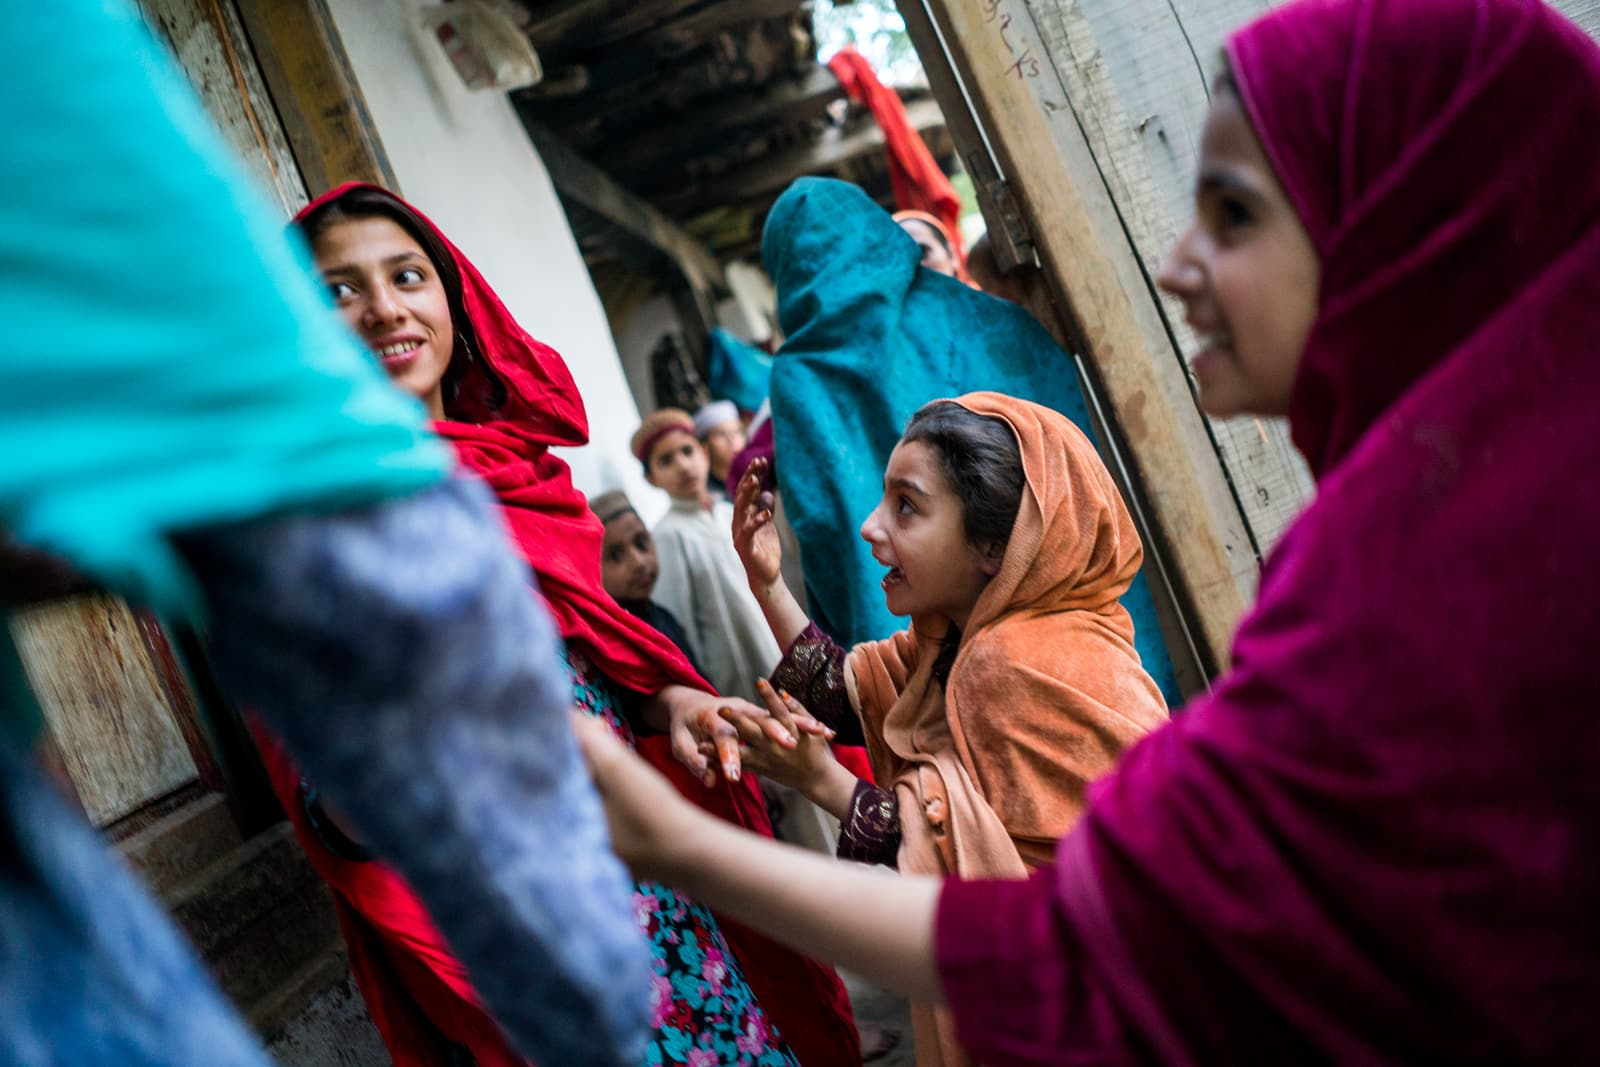 Reverse culture shock from long-term travel - Women and girls in Thall, Pakistan - Lost With Purpose travel blog